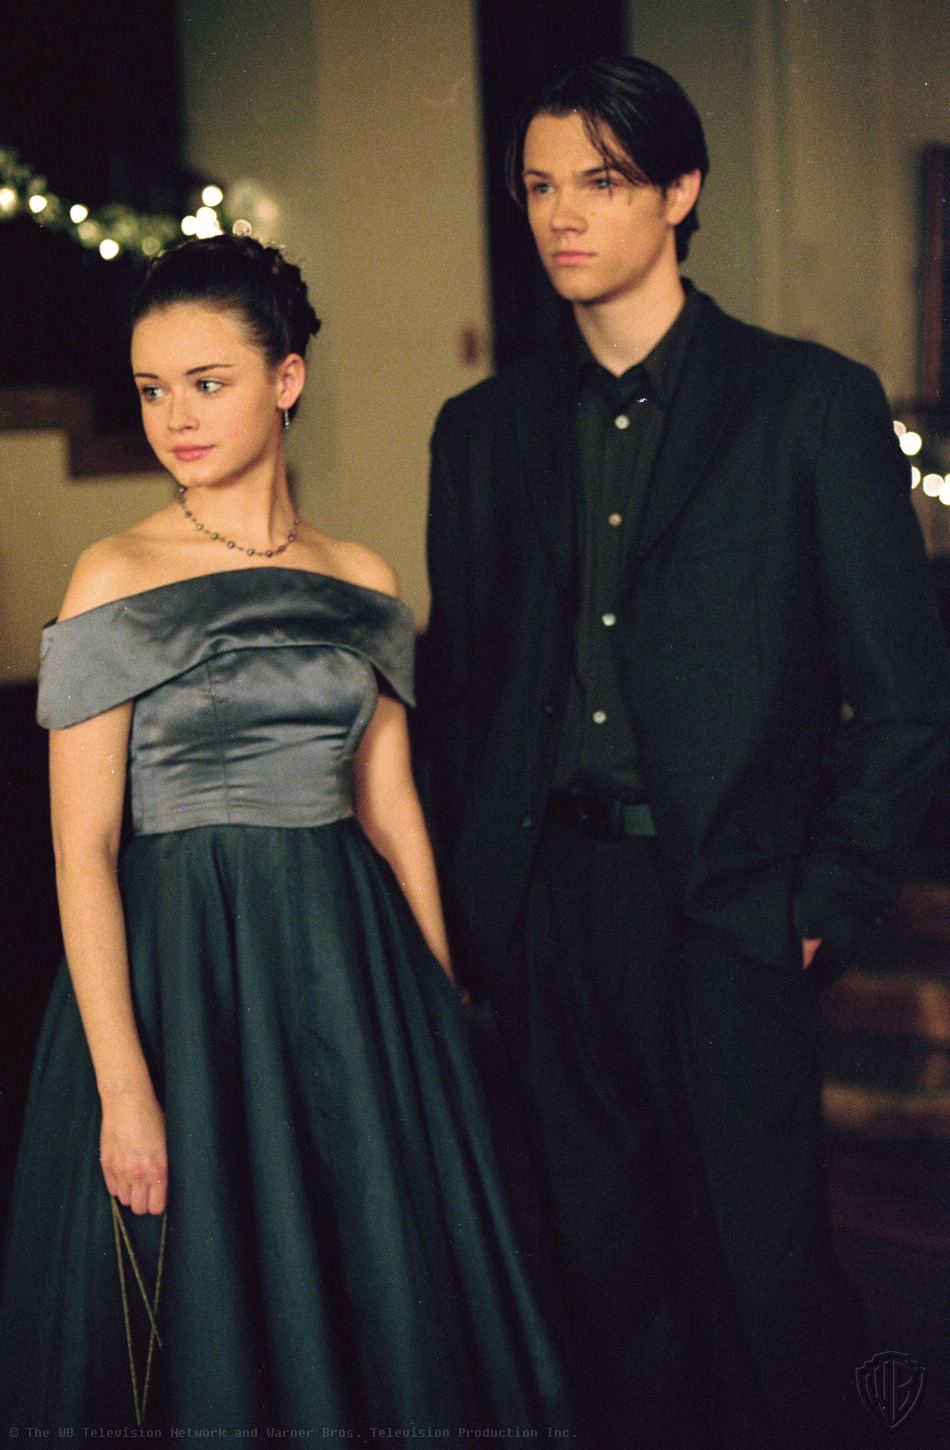 Jared And Alexis Bledel In Gilmore Girls